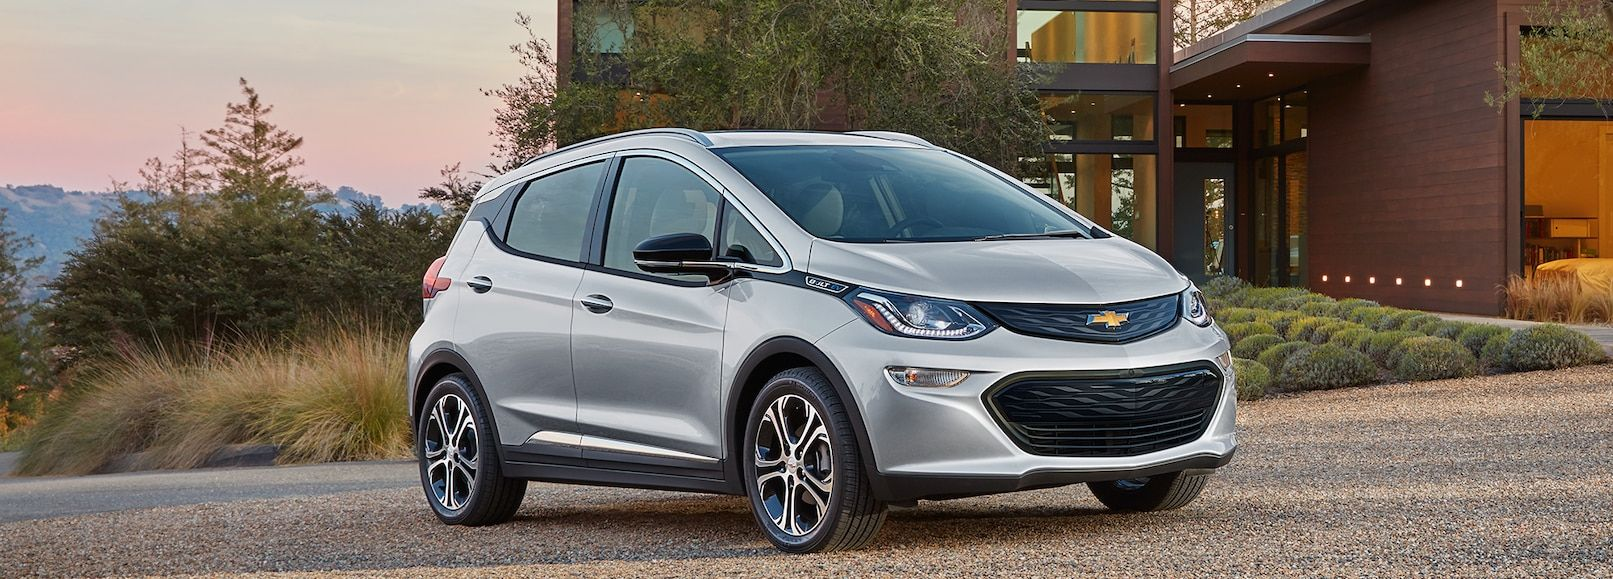 2019 Chevrolet Bolt EV for Sale near Escondido, CA